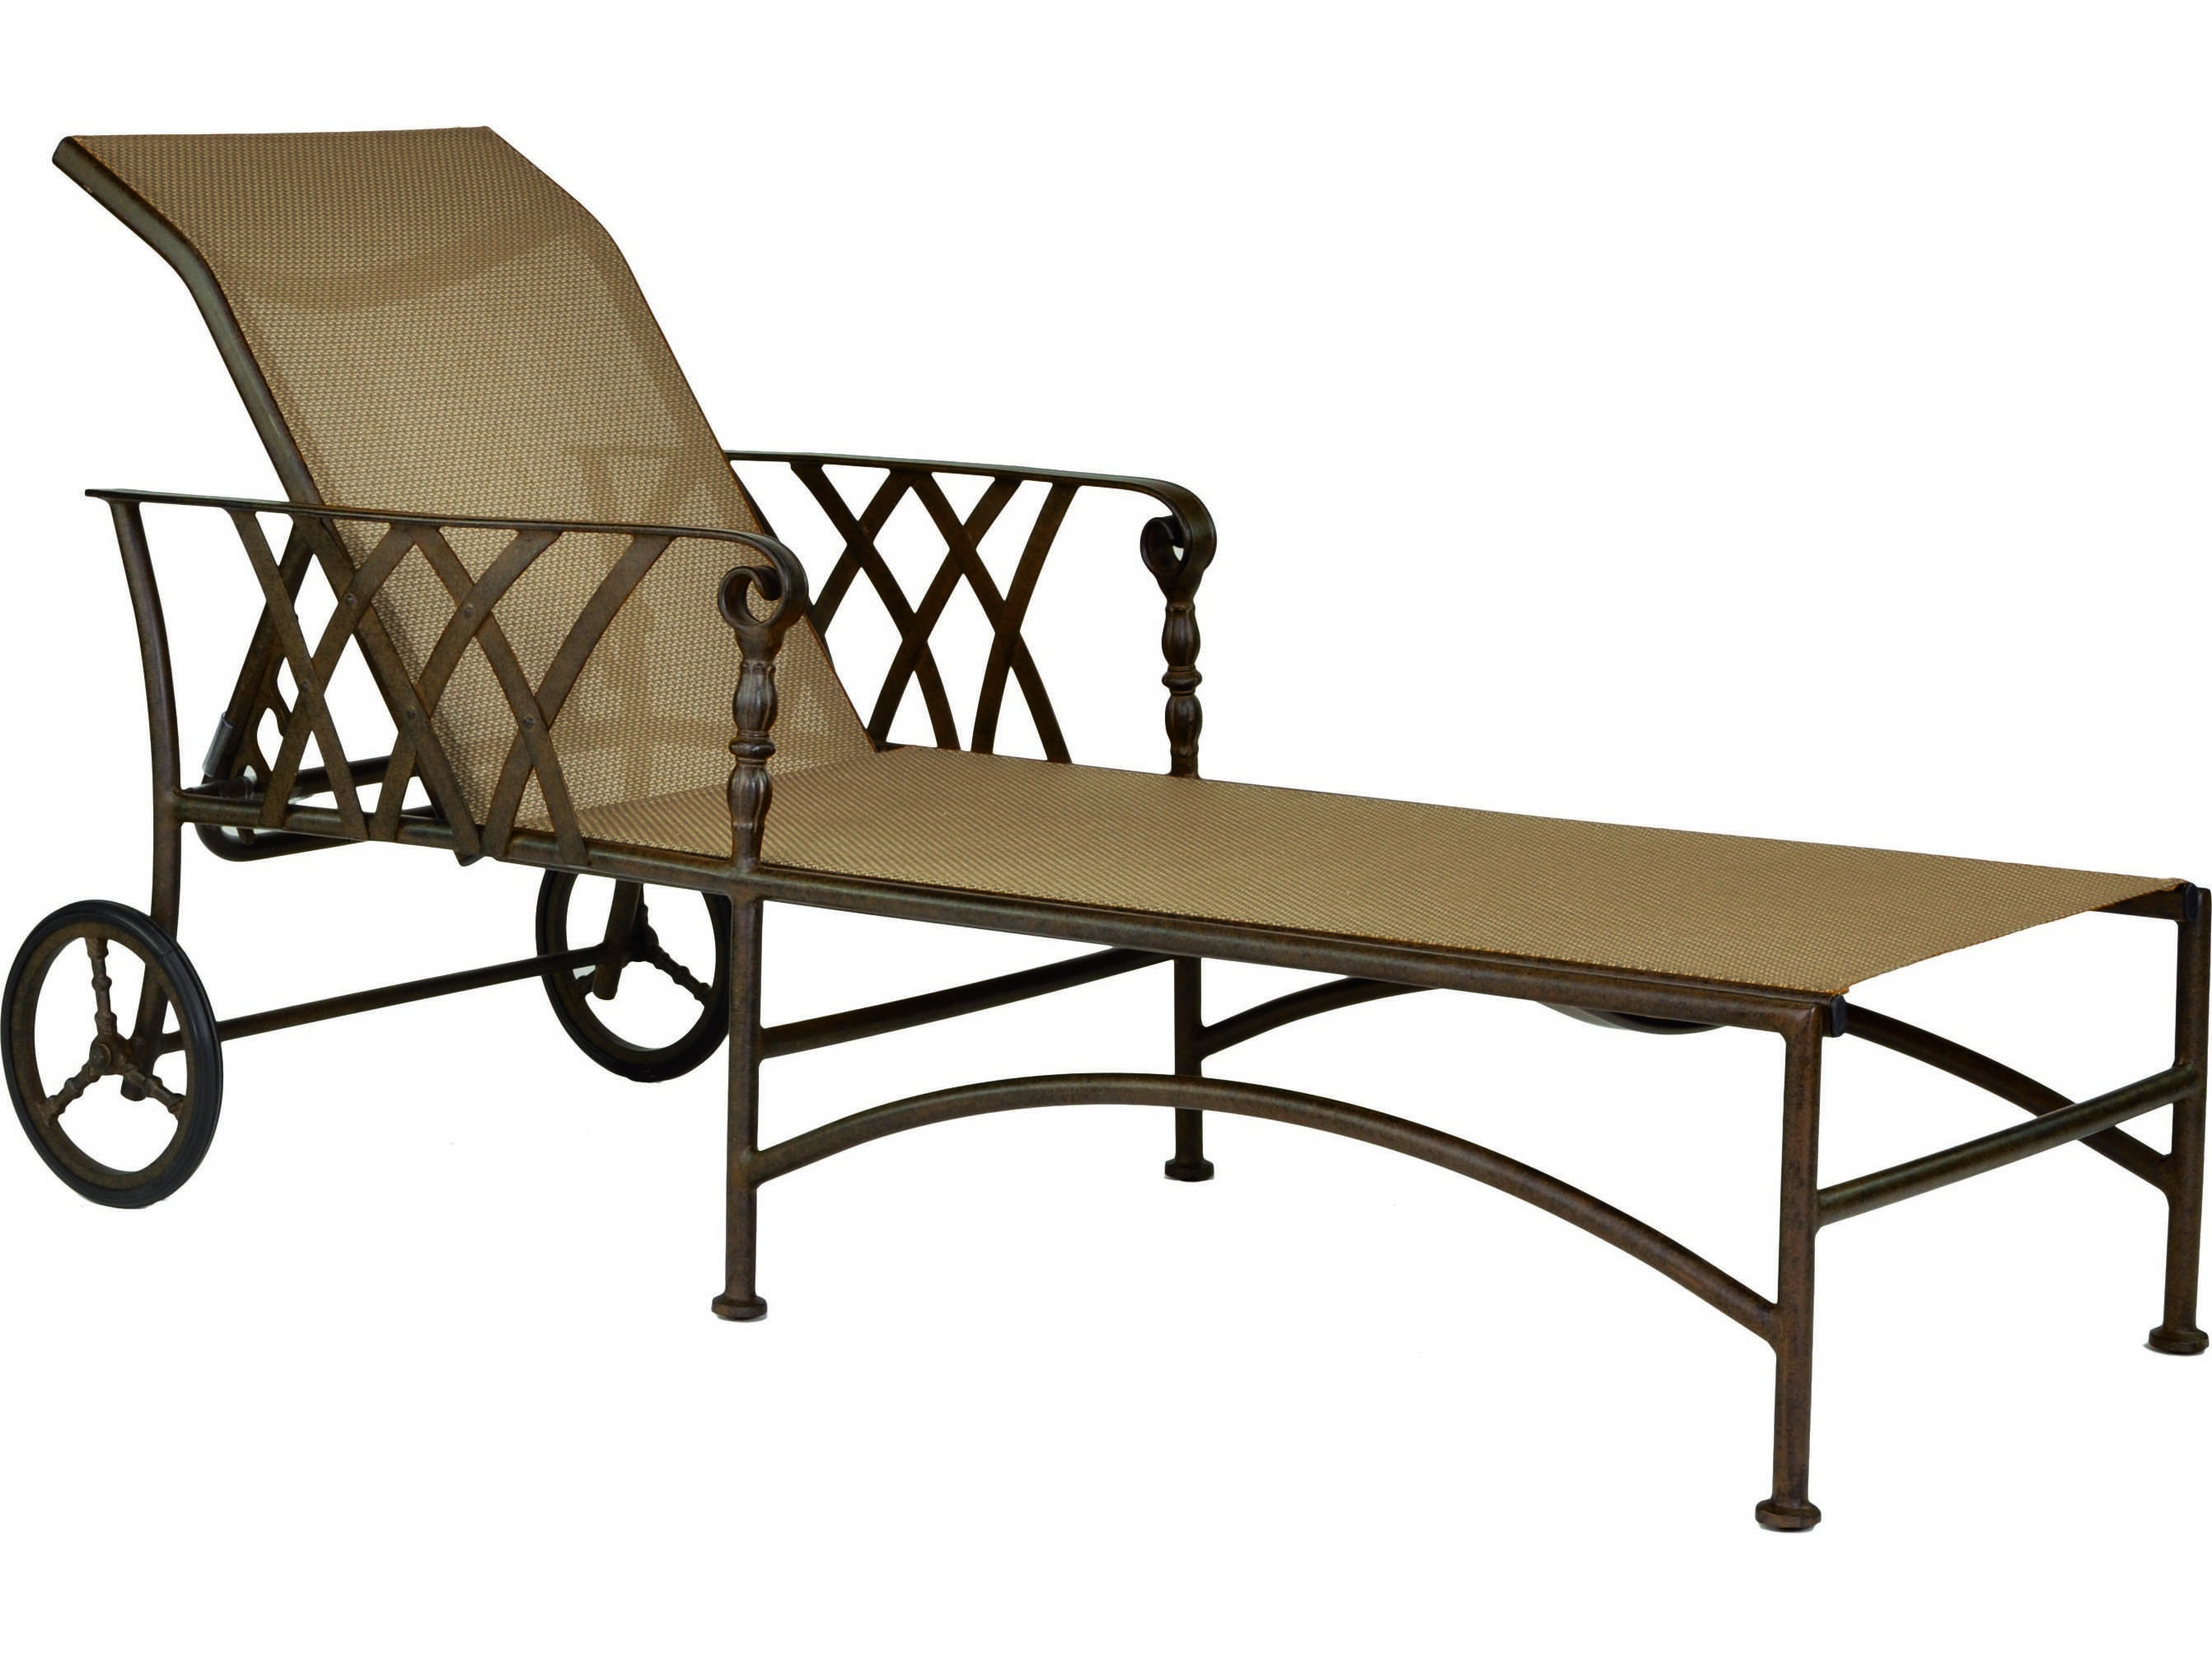 Castelle veranda sling cast aluminum adjustable chaise for Aluminum chaise lounge with wheels